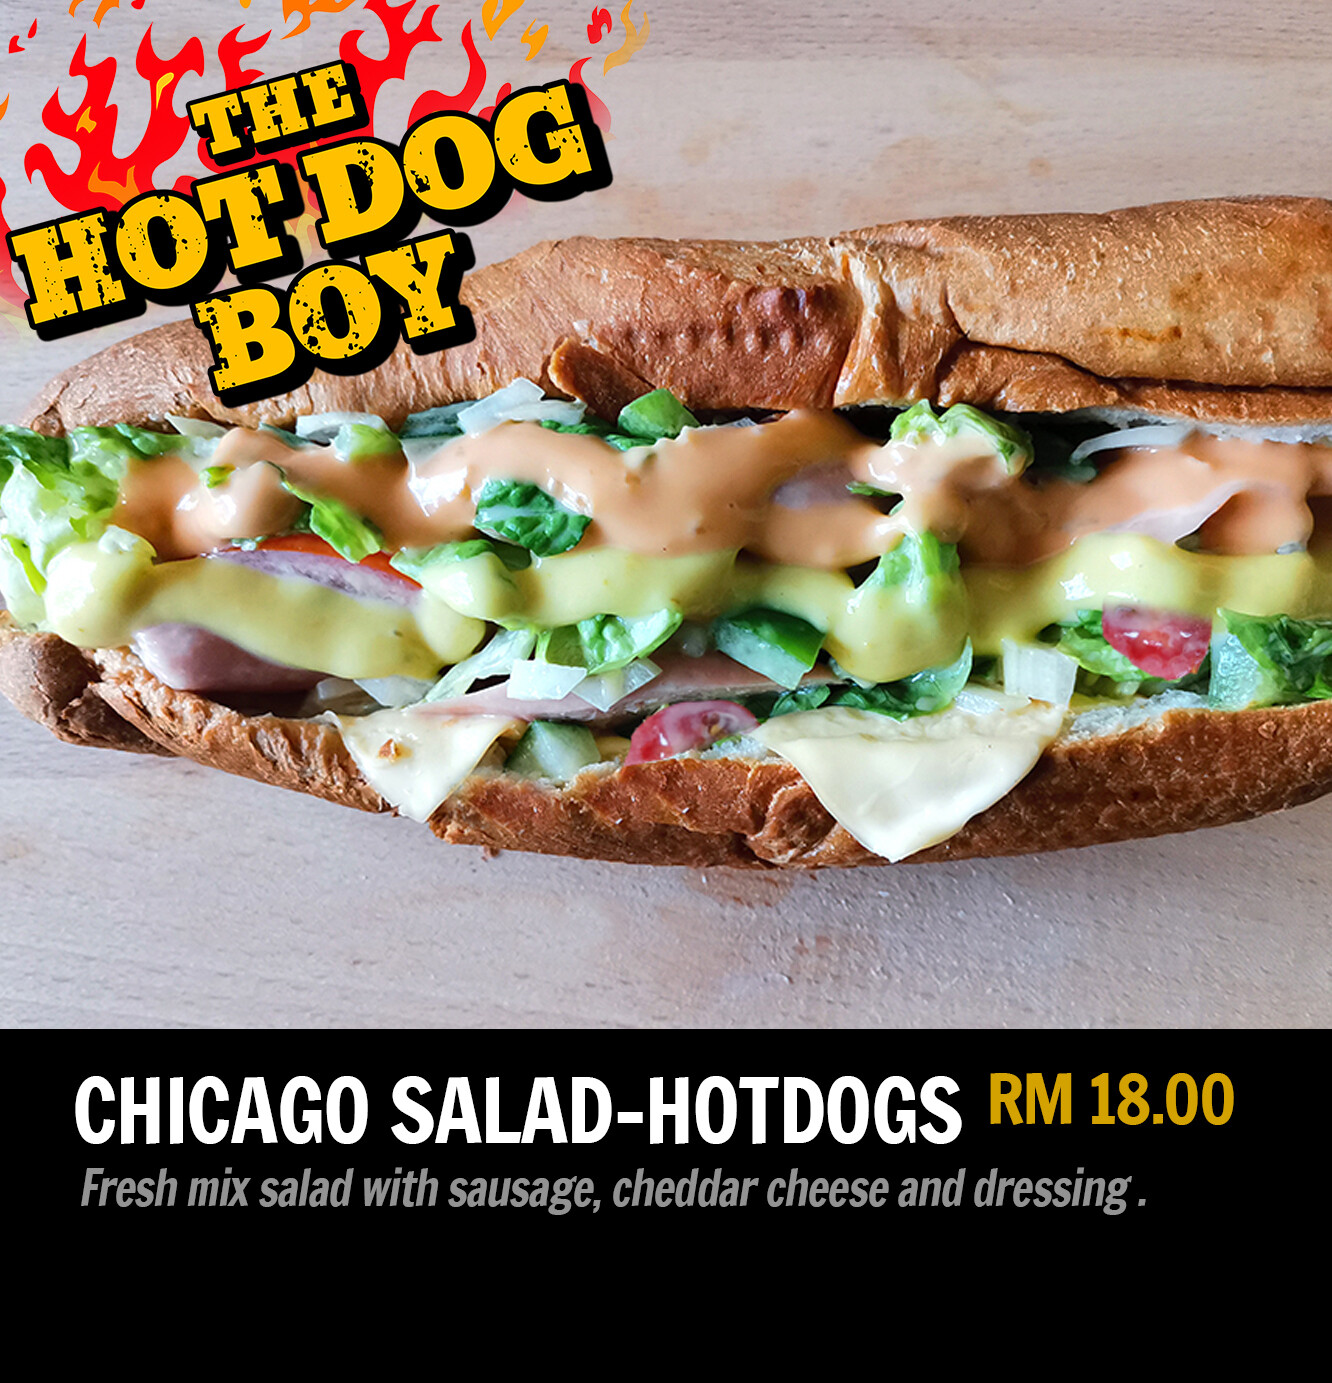 Chicago-Style Salad Hot Dogs